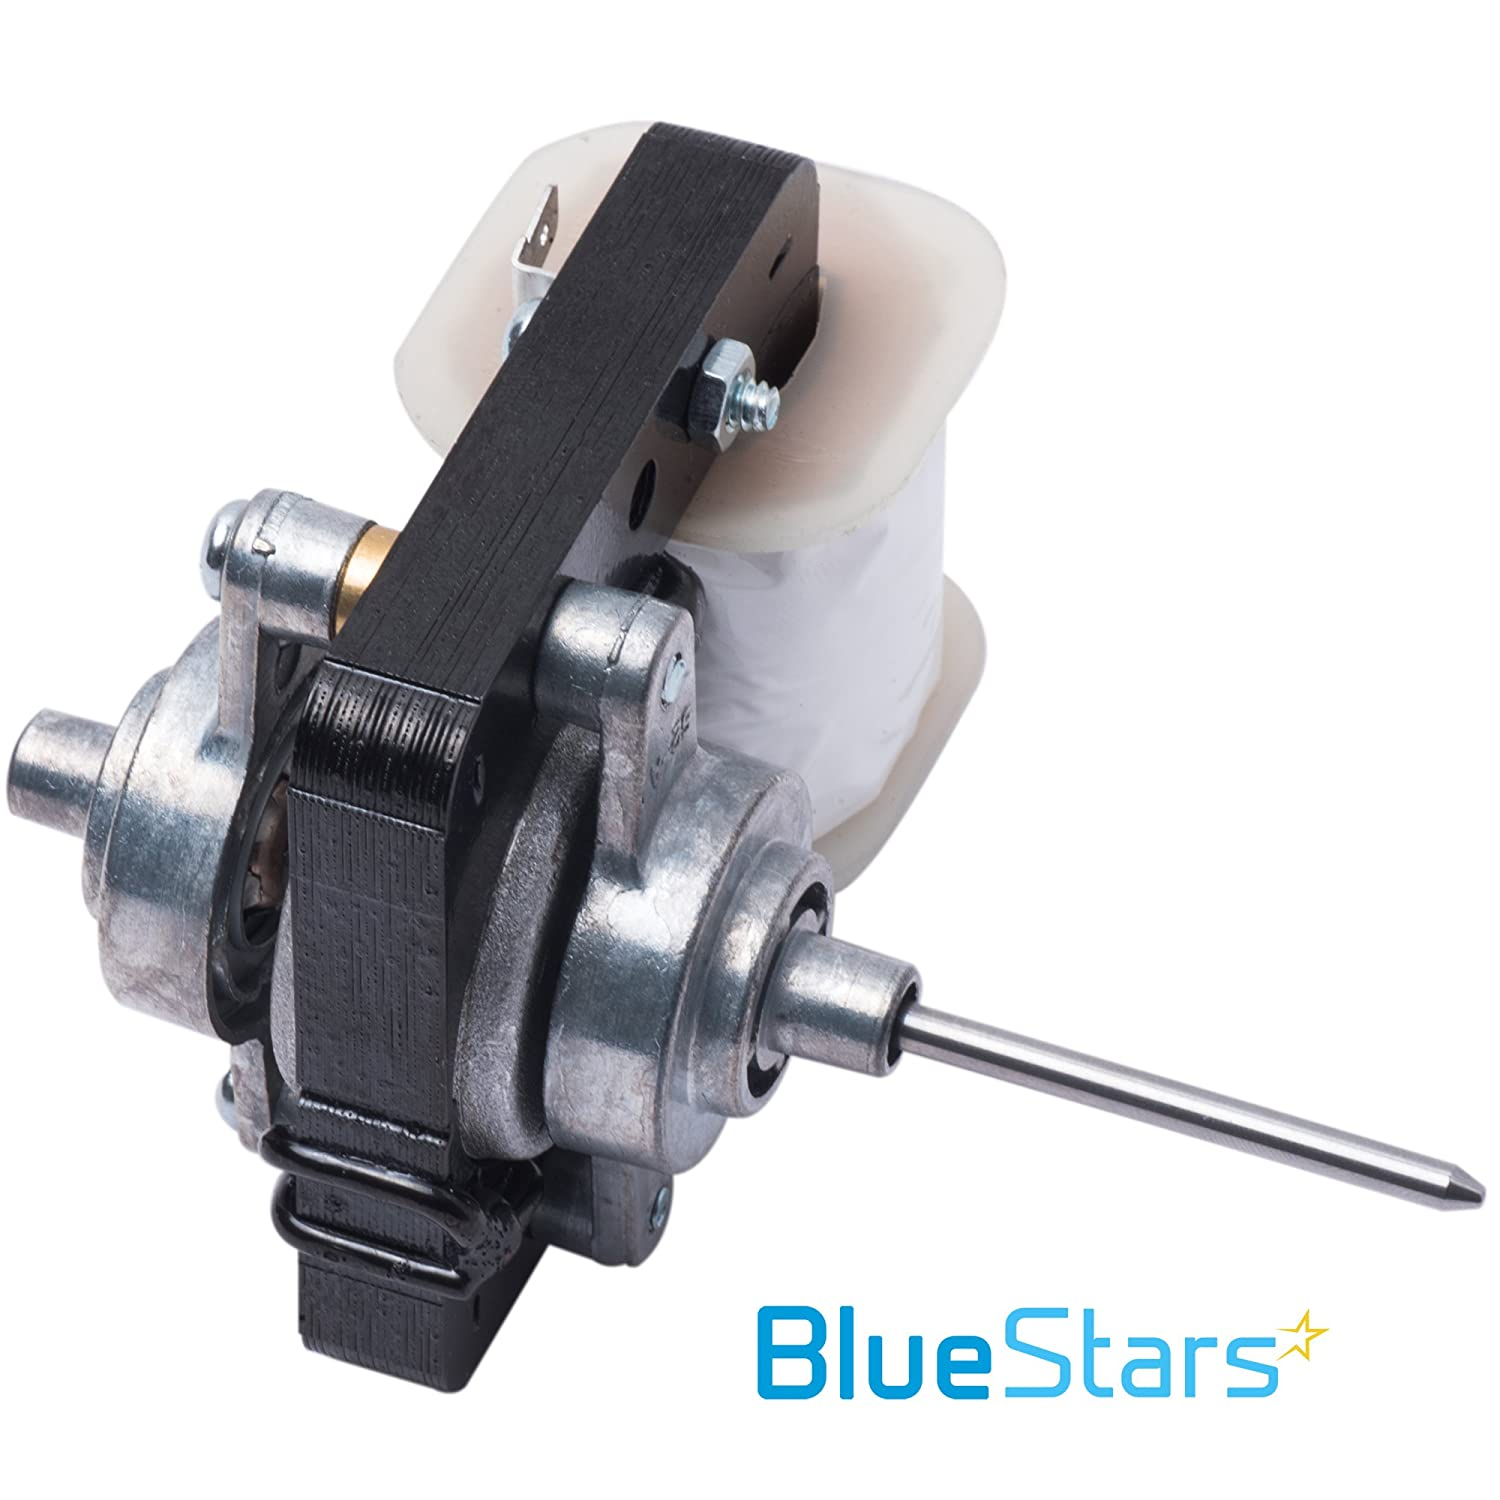 Replaces AP4700070 PS3419839 Exact Fit for Frigidaire Kenmore Electrolux fridges 5303918549 Ultra Durable 240369701 Refrigerator Evaporator Fan Motor Replacement part by Blue Stars